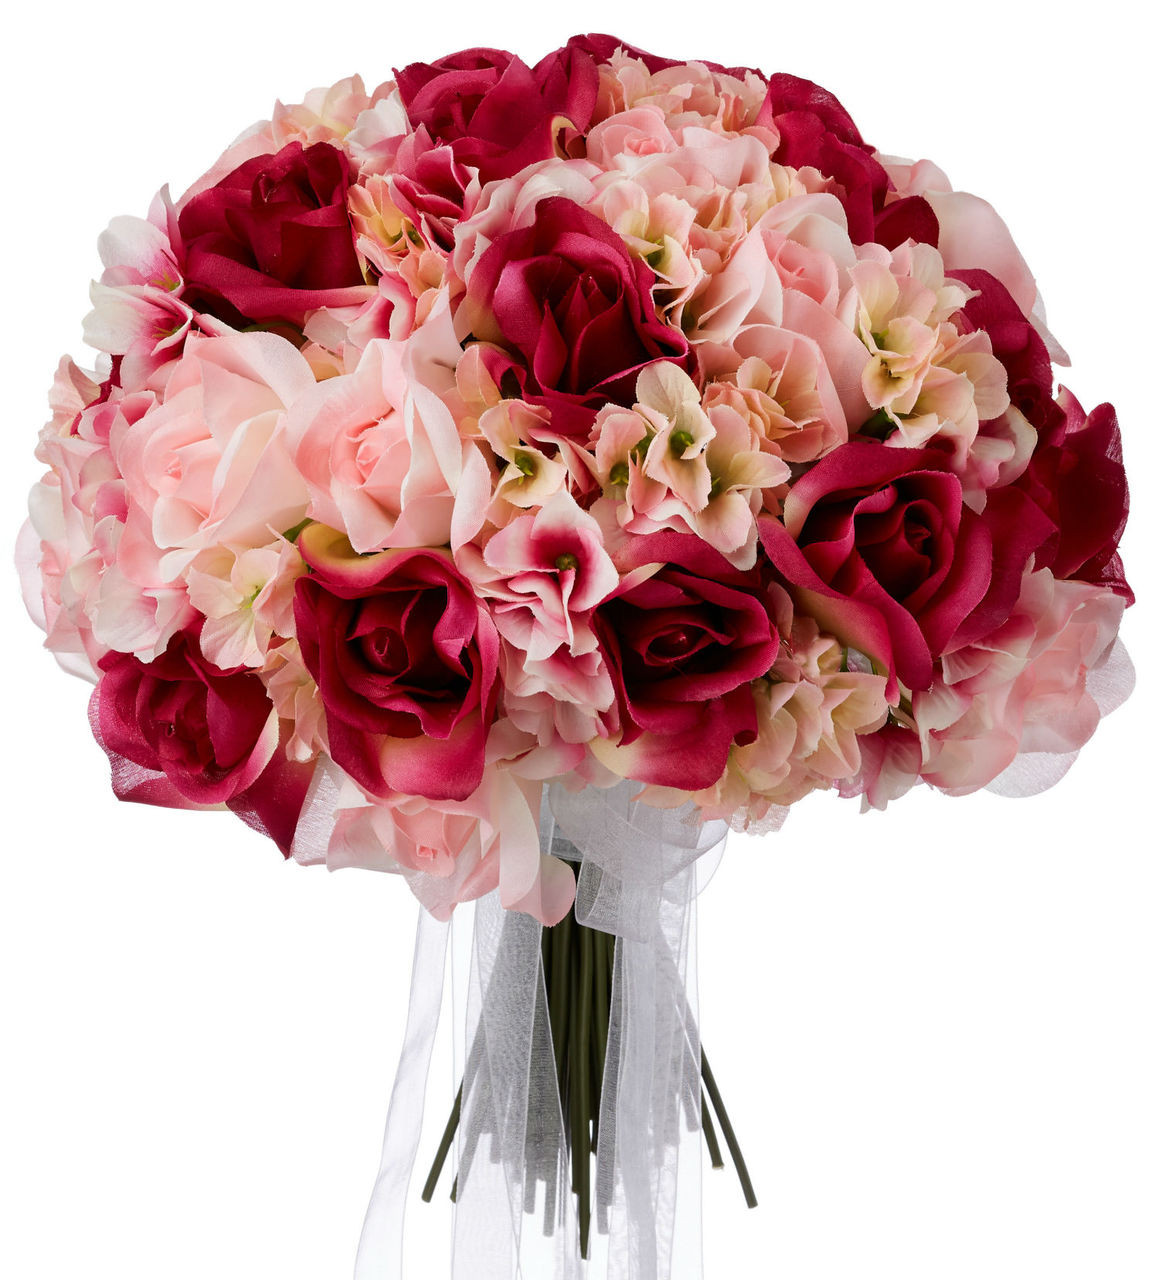 Dark Pink Wedding Flowers: Hydrangea Rose Pink And Fuchsia Hand Tie Large